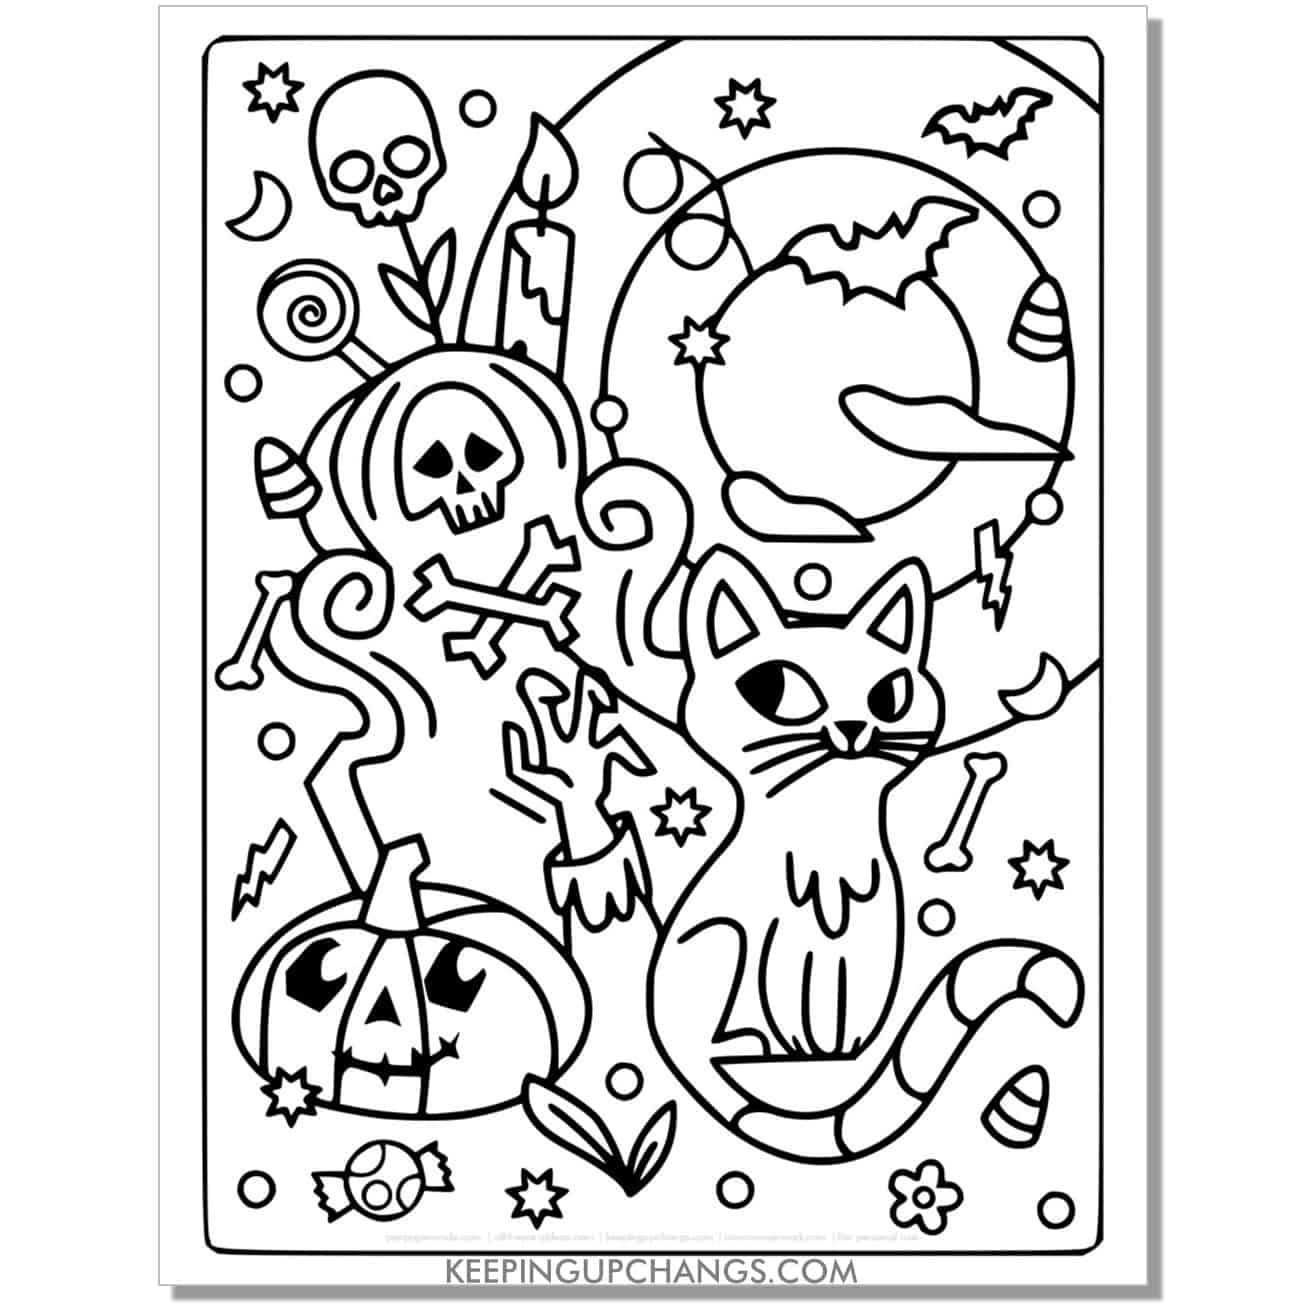 full size halloween cat zombie tombstone coloring page.